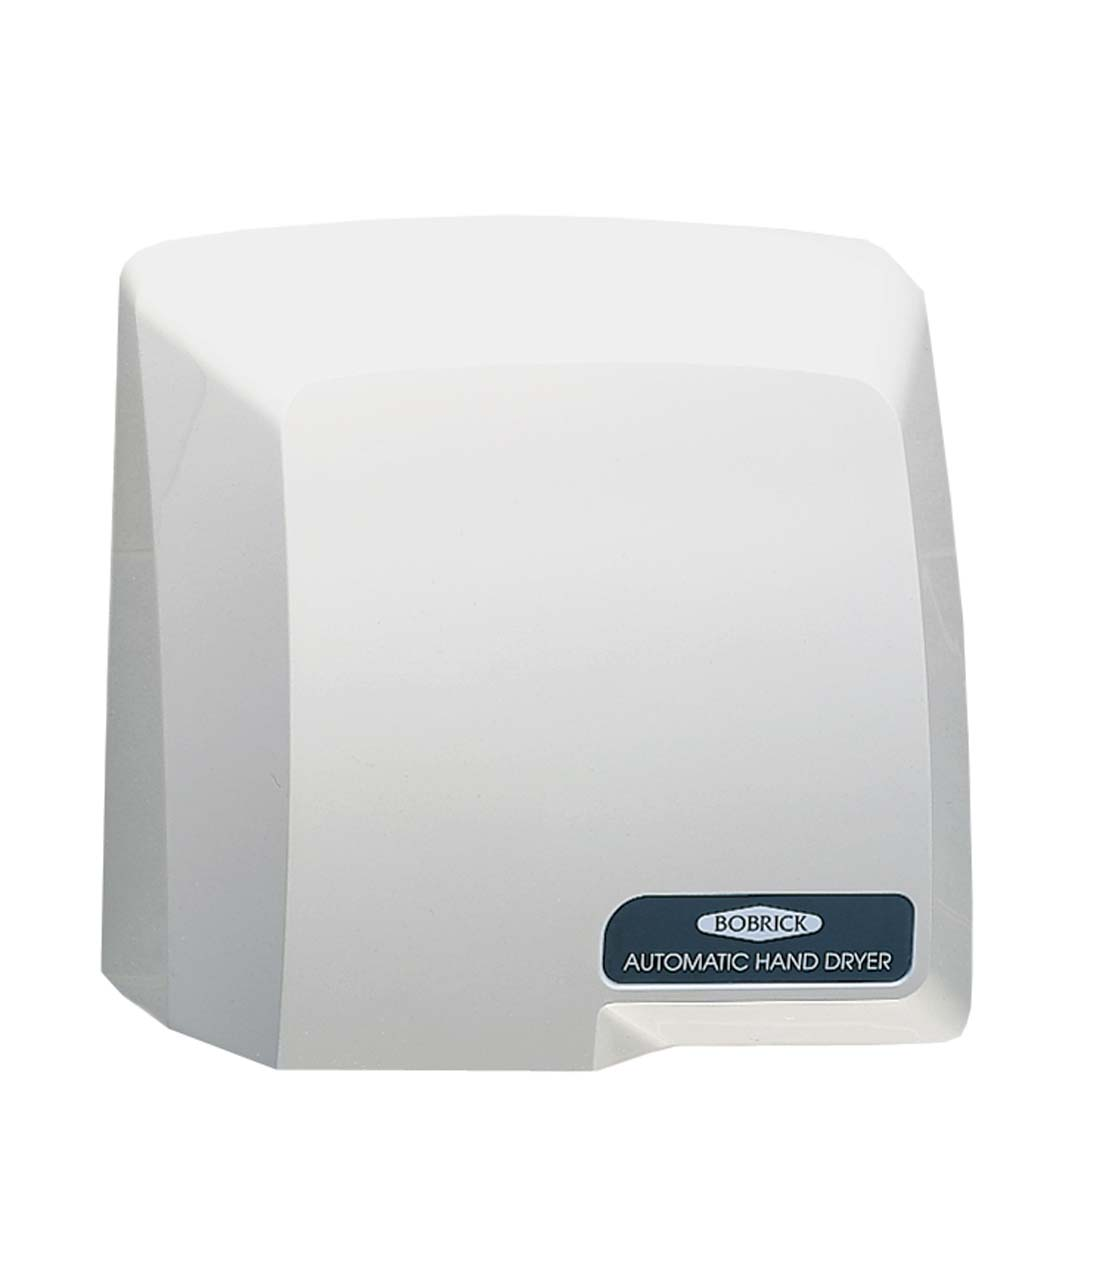 Bobrick B-710 115V Automatic Hand Dryer